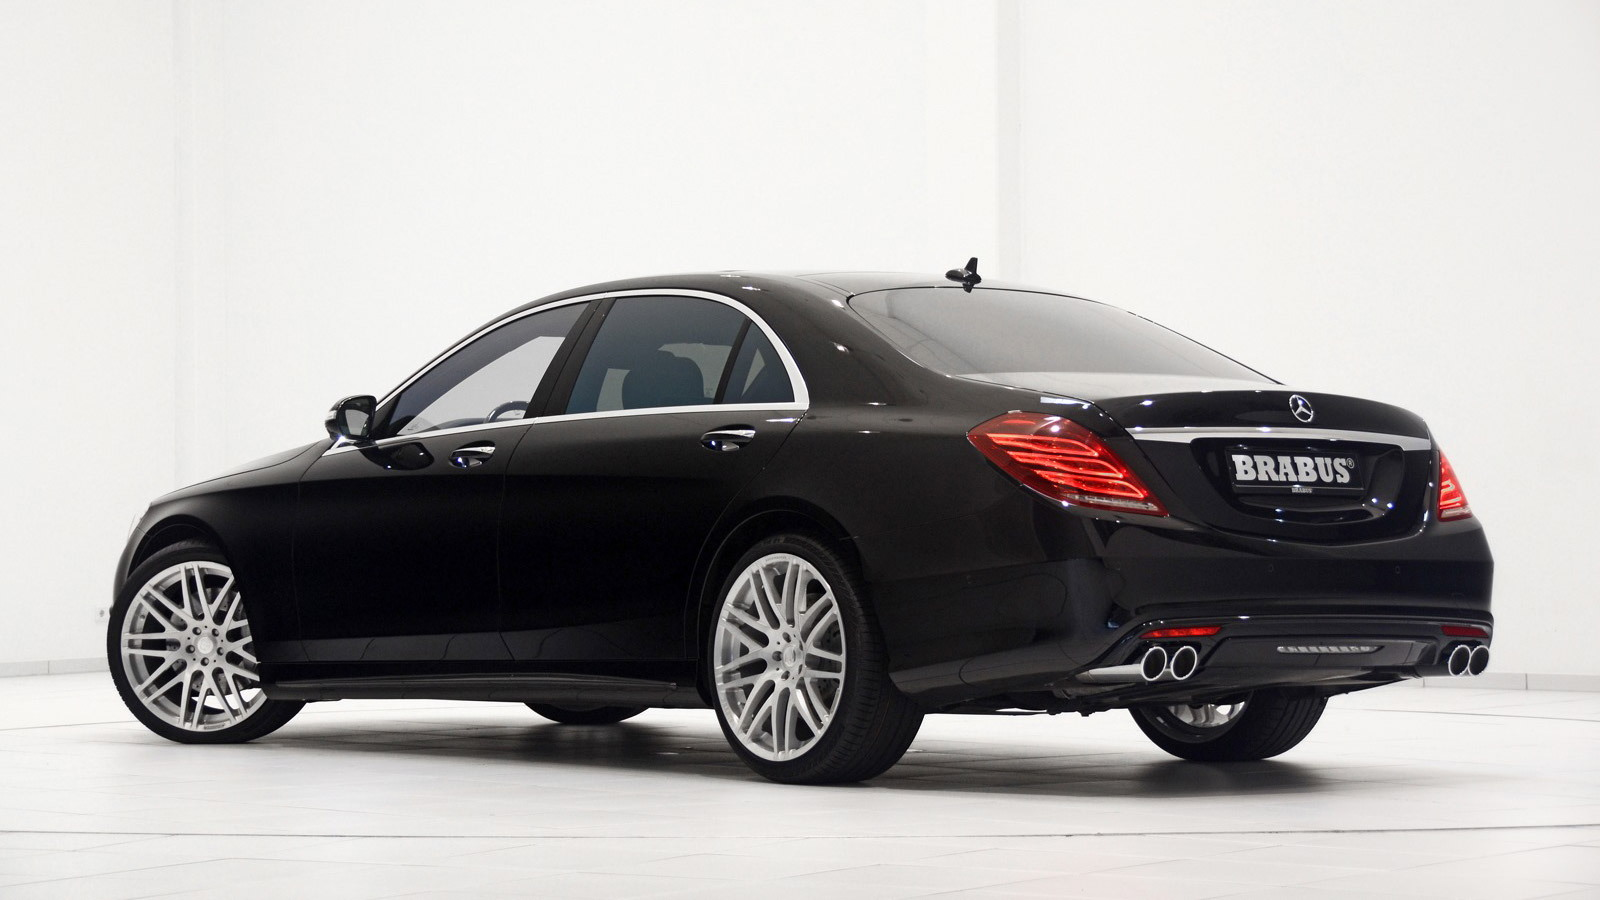 2014 Mercedes-Benz S-Class by Brabus